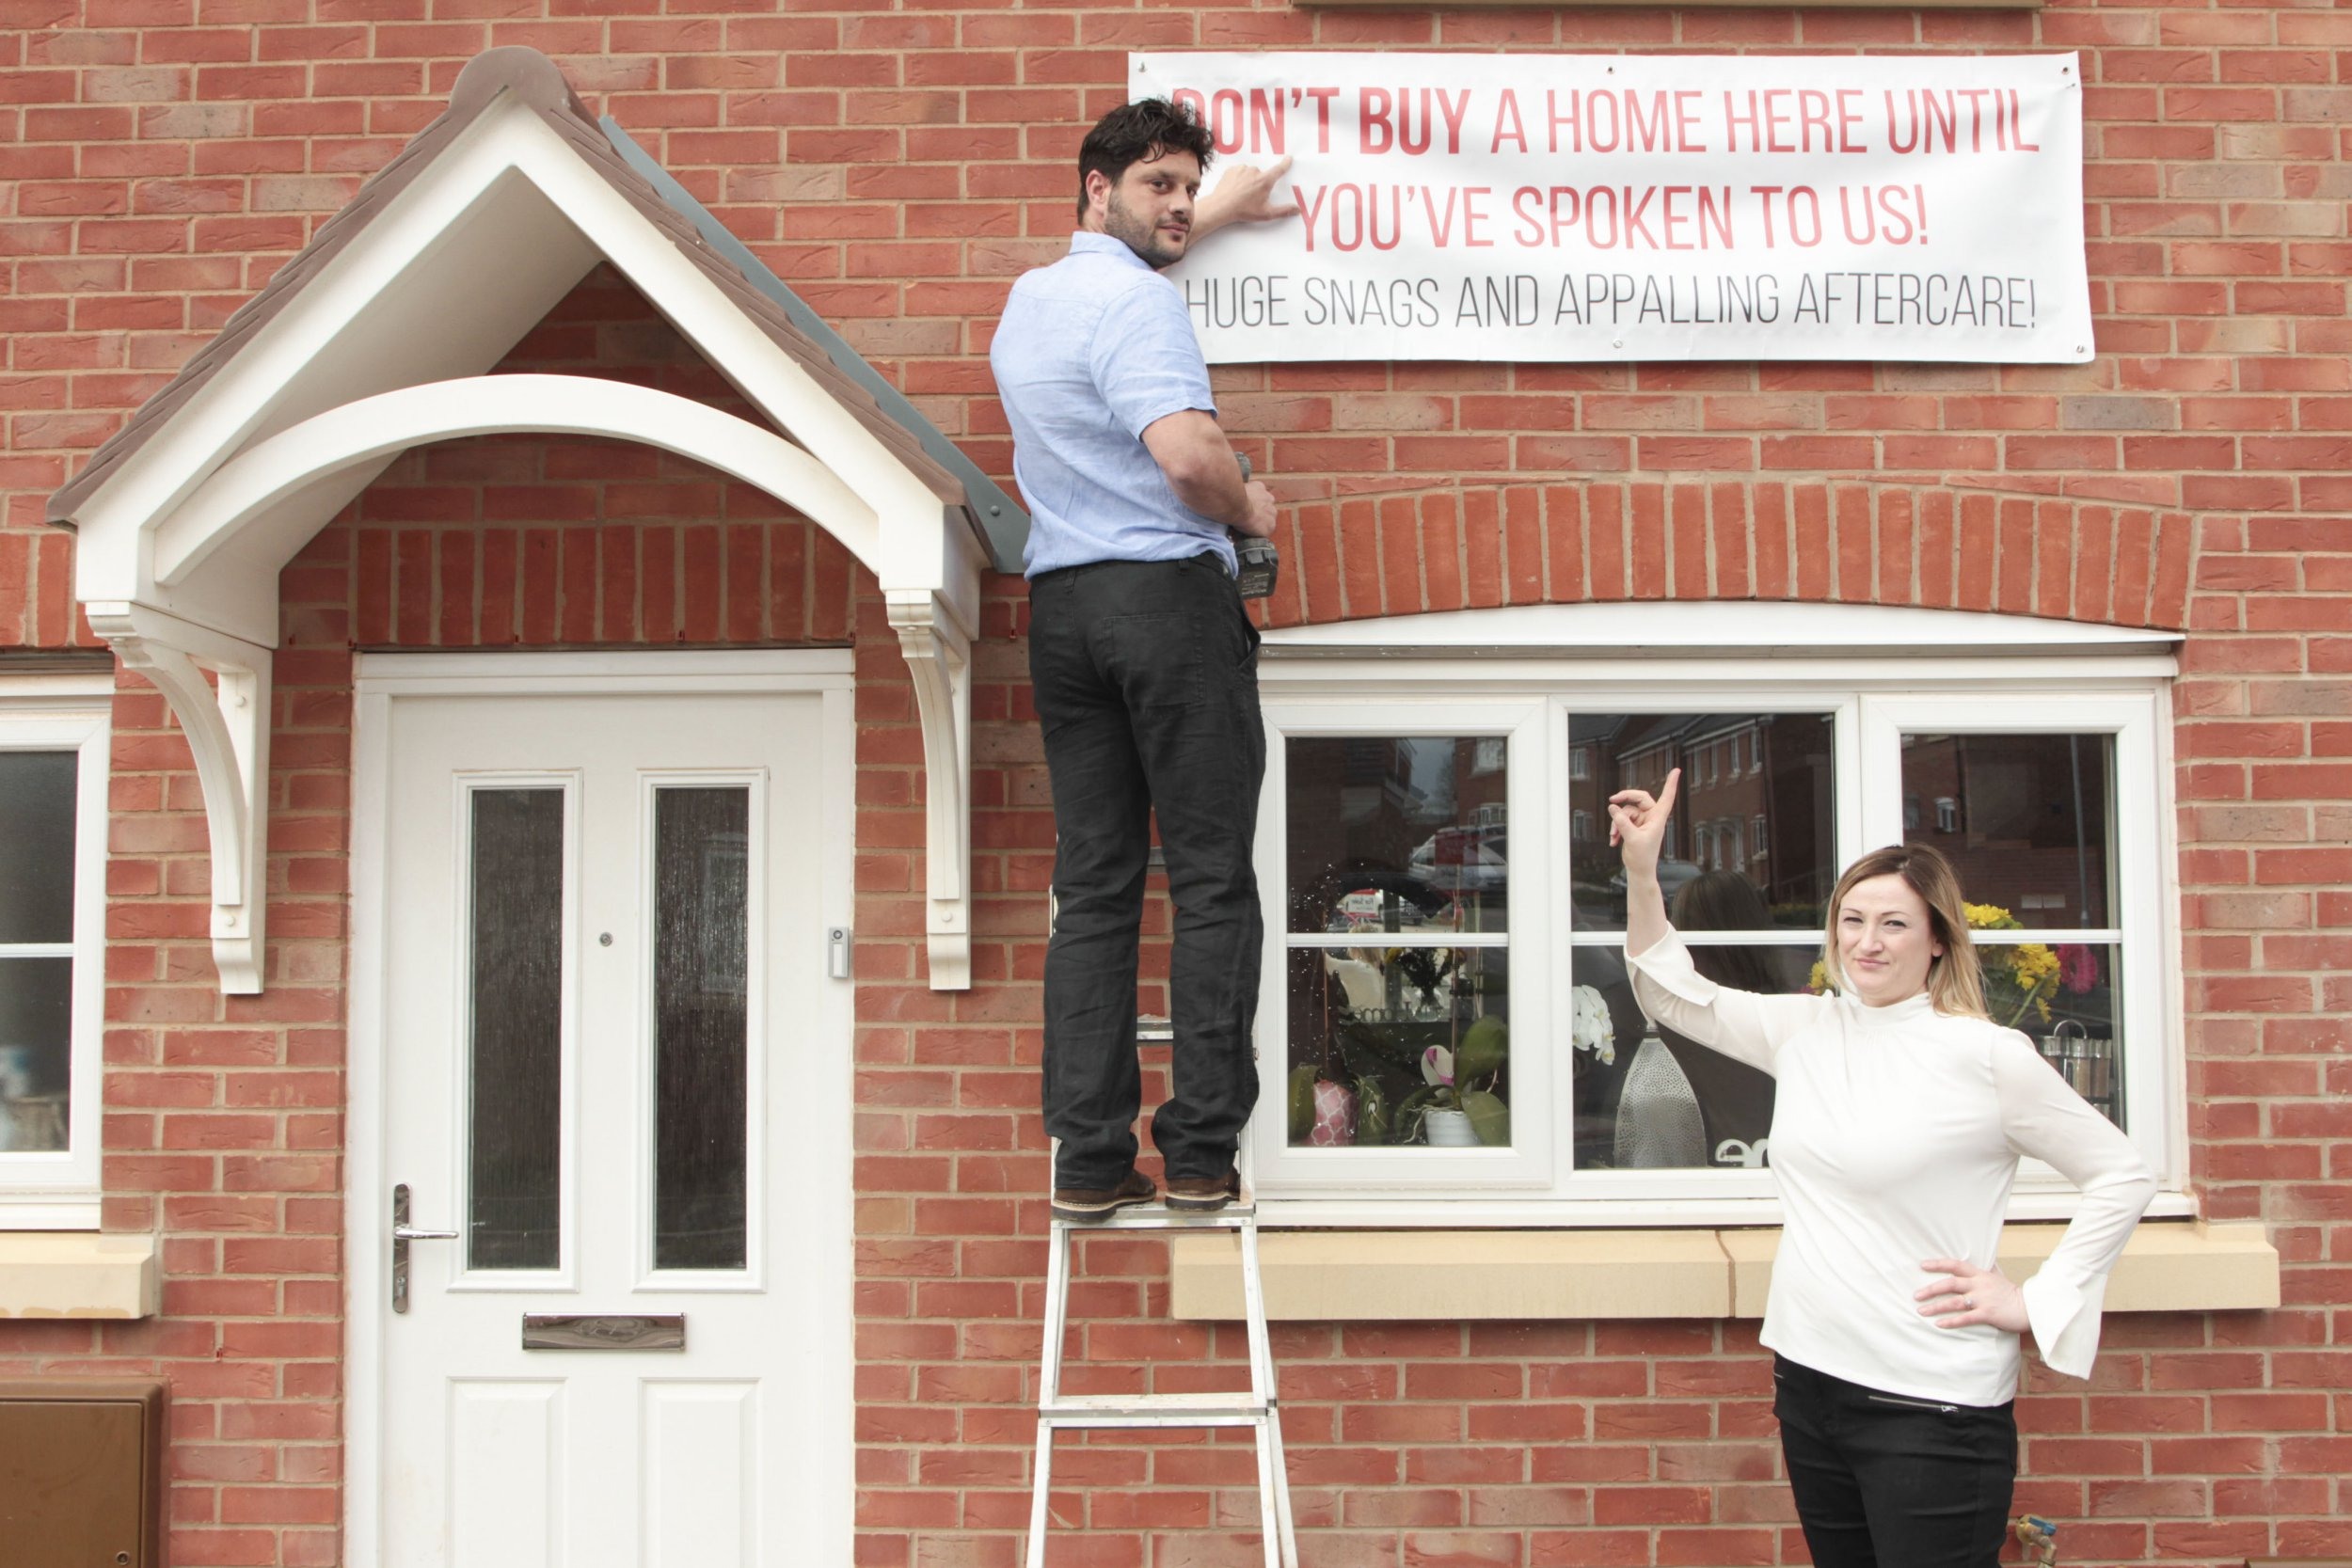 Pic By Dilantha Dissanayake/ Caters News - (PICTURED: Faye, 40 and Neil Douglas, 38 in Droitwich point at buyers warning sign of badly built house. Pic Taken: 25/04/2019) - A pair of disgruntled homeowners are so fed-up with their home from hell they hung a giant sign from the front of their new build to warn off other buyers. Mum-of-two Faye Douglas, 40, and hubby Neil, 38, paid 286,000 for the four-bedroom home on the Persimmon development in Droitwich, Worcs after the birth of their twin boys as a forever home. But Faye claims that their lives have become a living nightmare after the house was allegedly left strewn with third-rate building work including wonky walls and doors and windows that dont open properly.SEE CATERS COPY